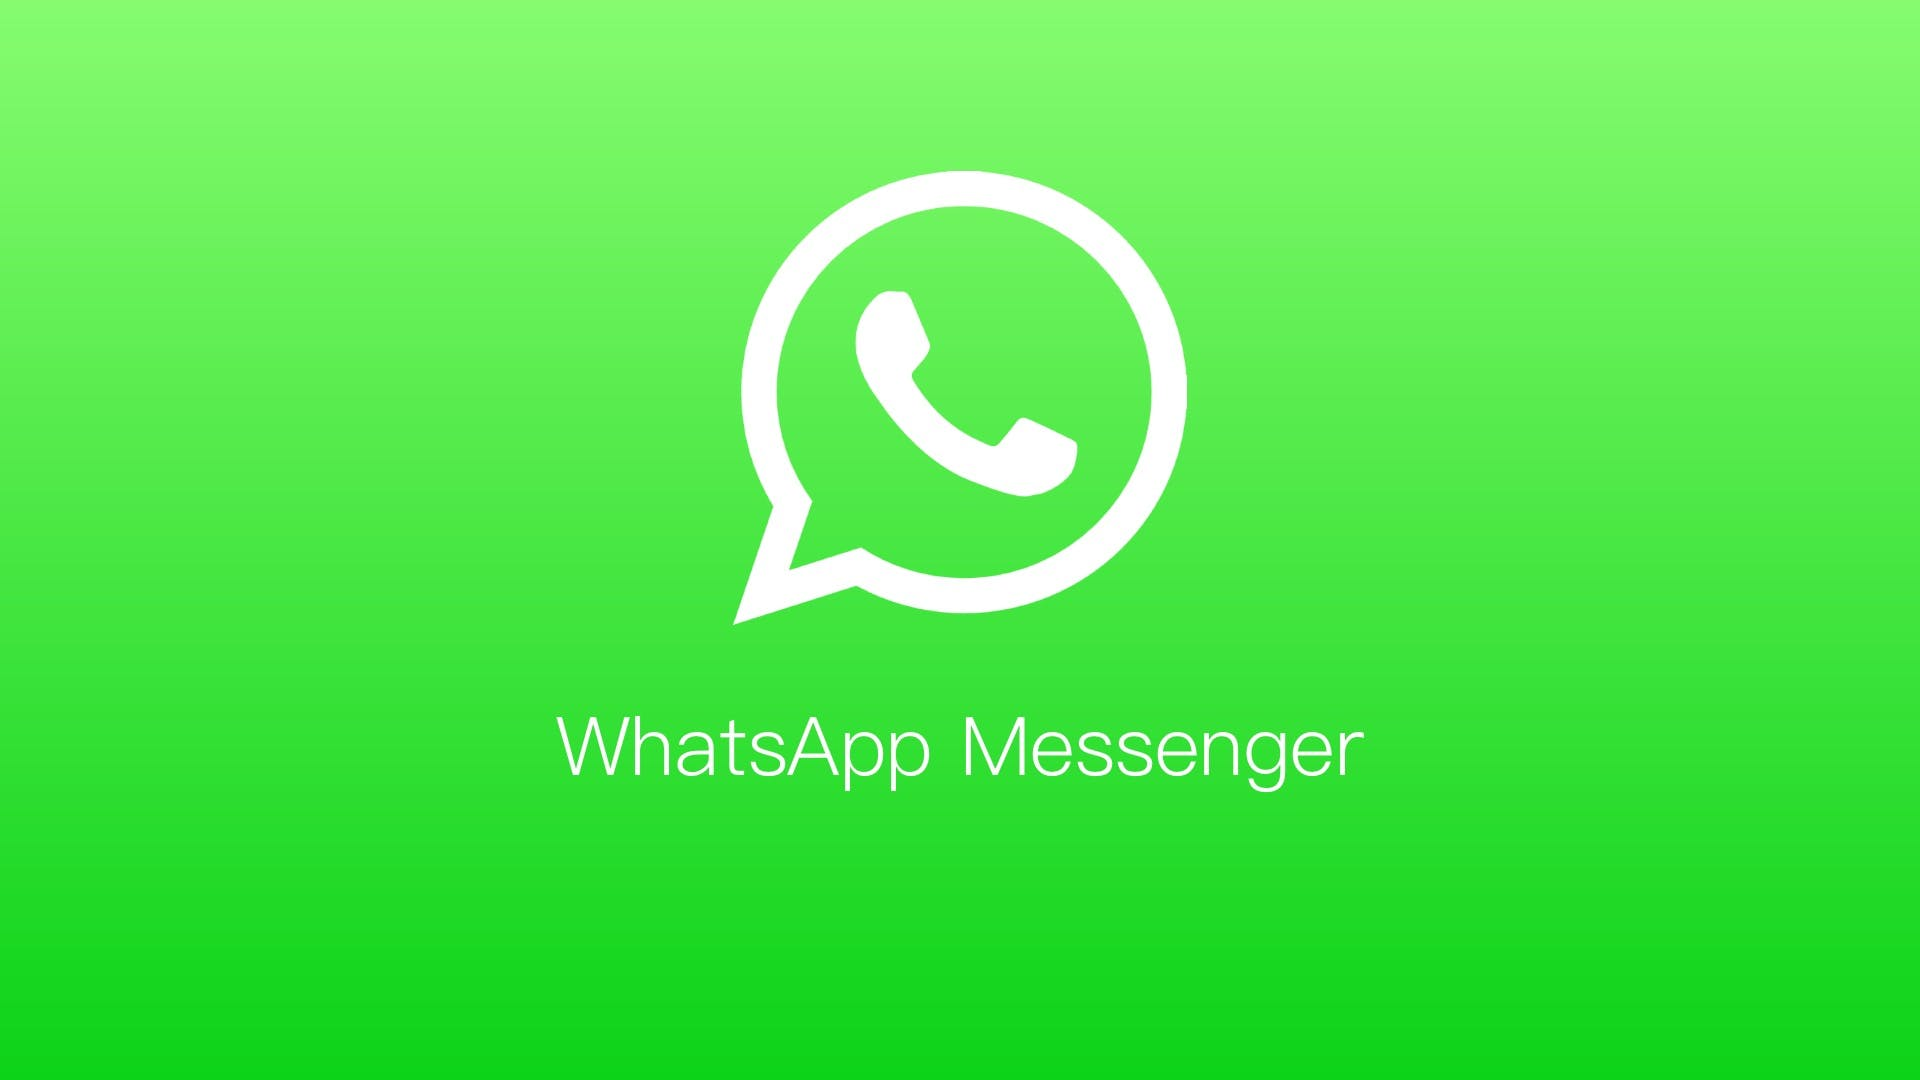 WhatsApp, 信使, 聊天 的 免费素材照片